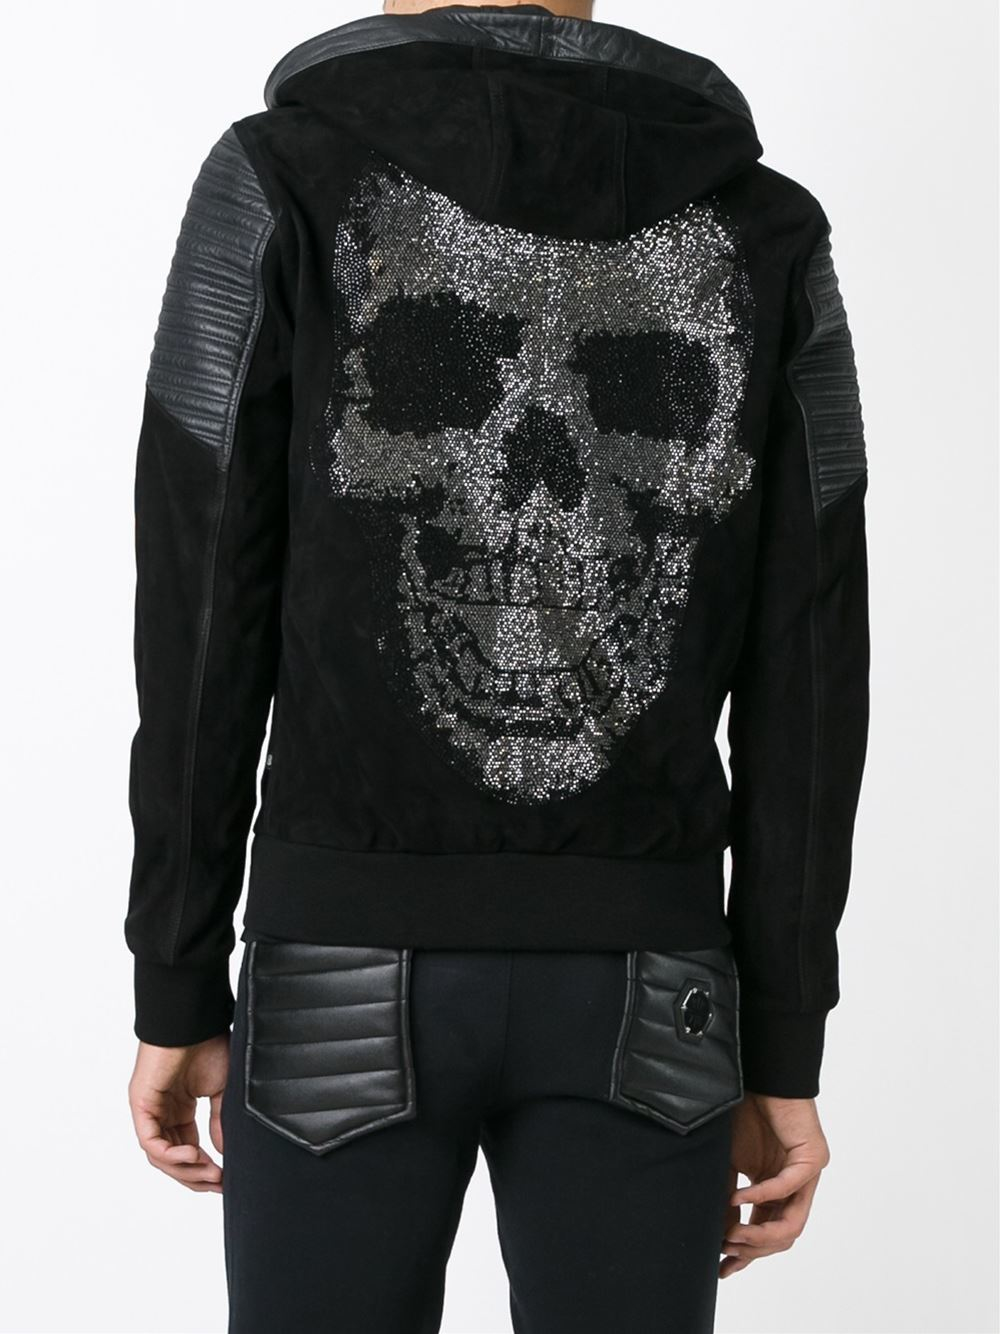 philipp plein 39 diamond skull 39 jacket in black for men lyst. Black Bedroom Furniture Sets. Home Design Ideas